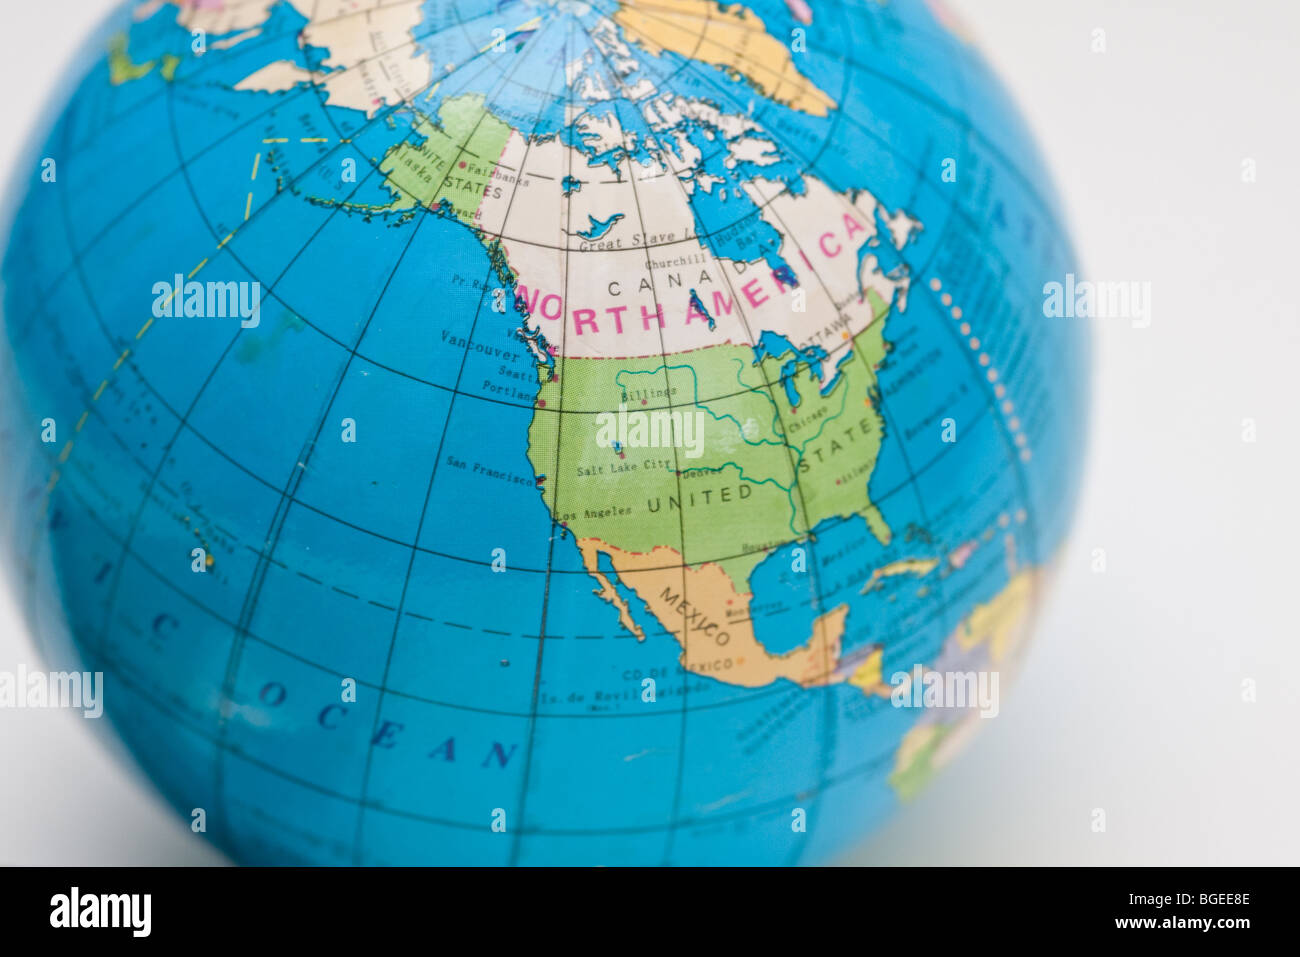 close up of a globe showing north America, Canada and the united states - Stock Image